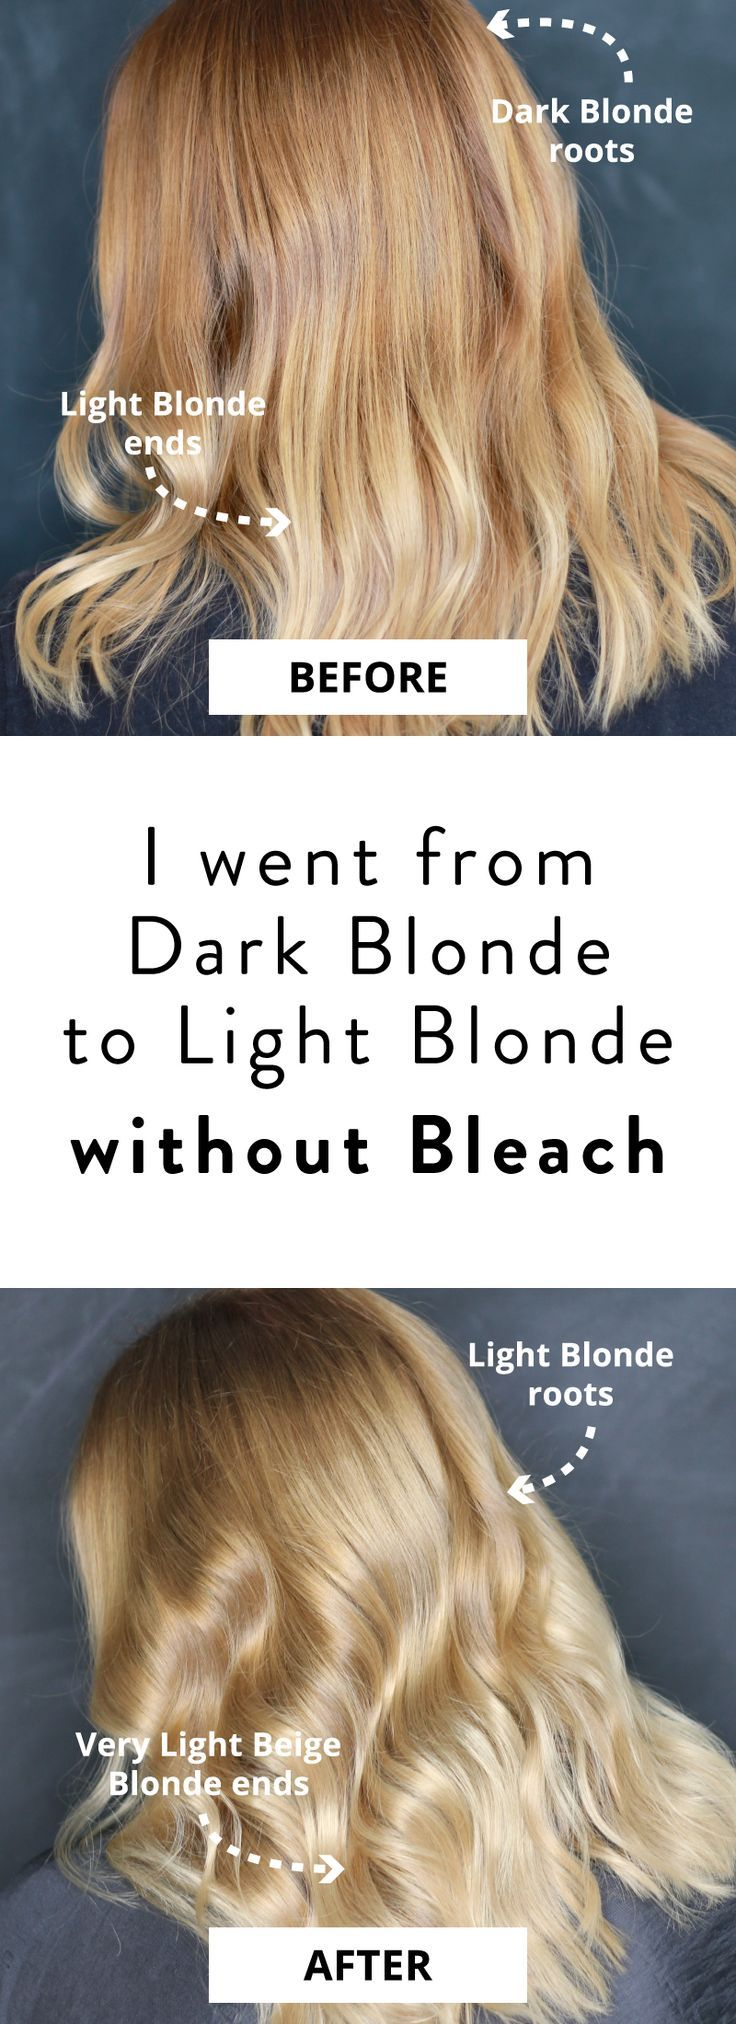 How I went from Dark Blonde to Light Blonde without Bleach